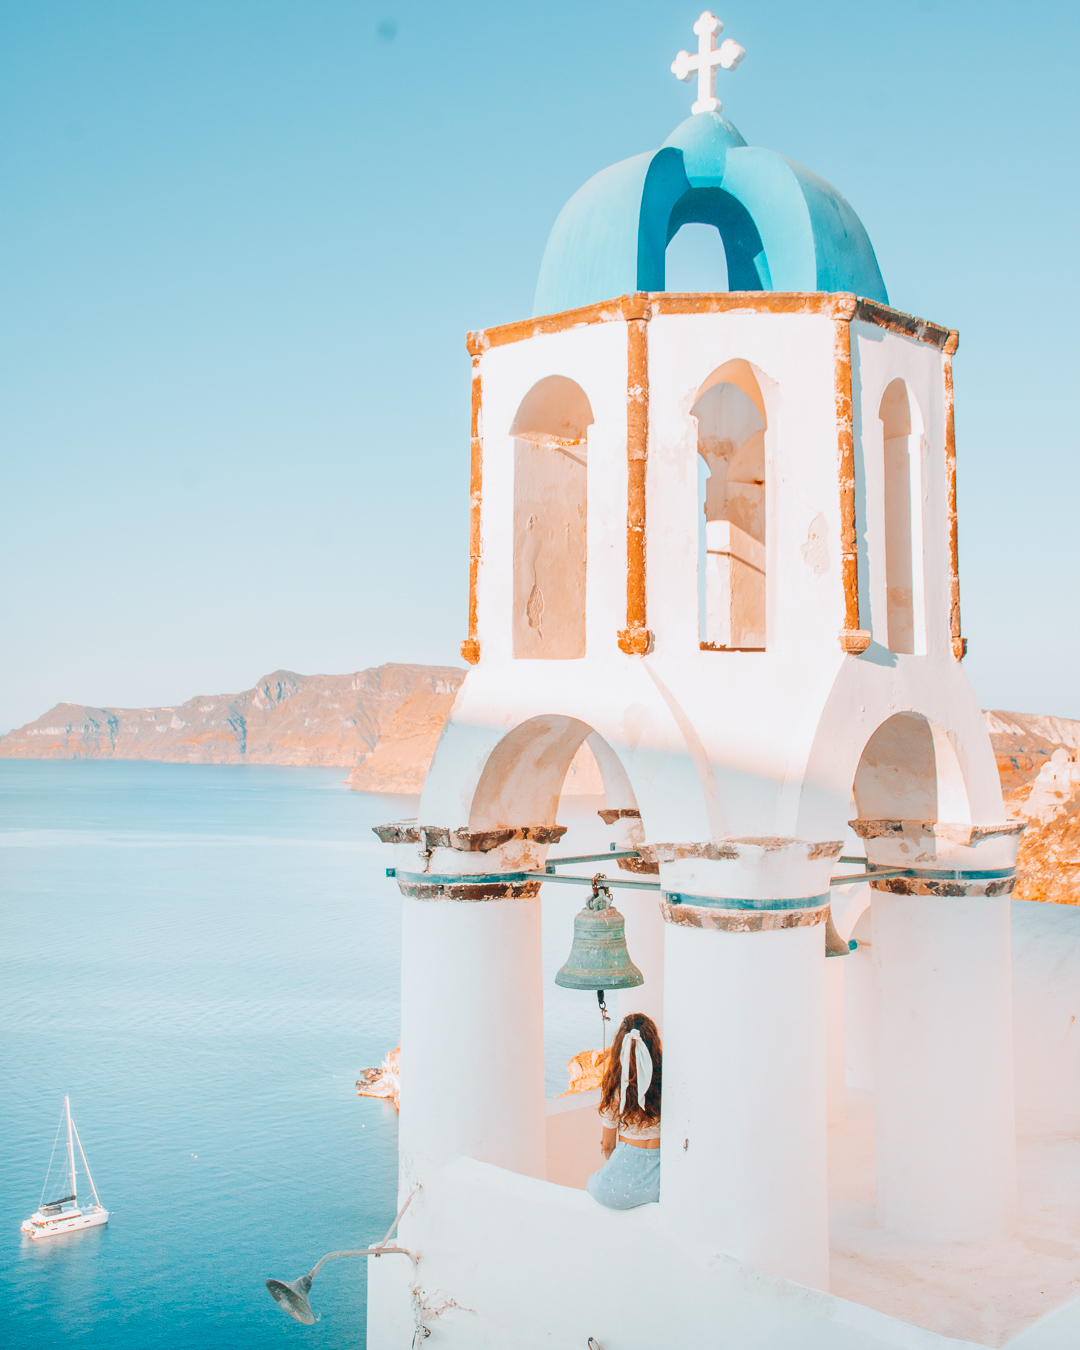 Girl sitting in a bell tower in Santorini